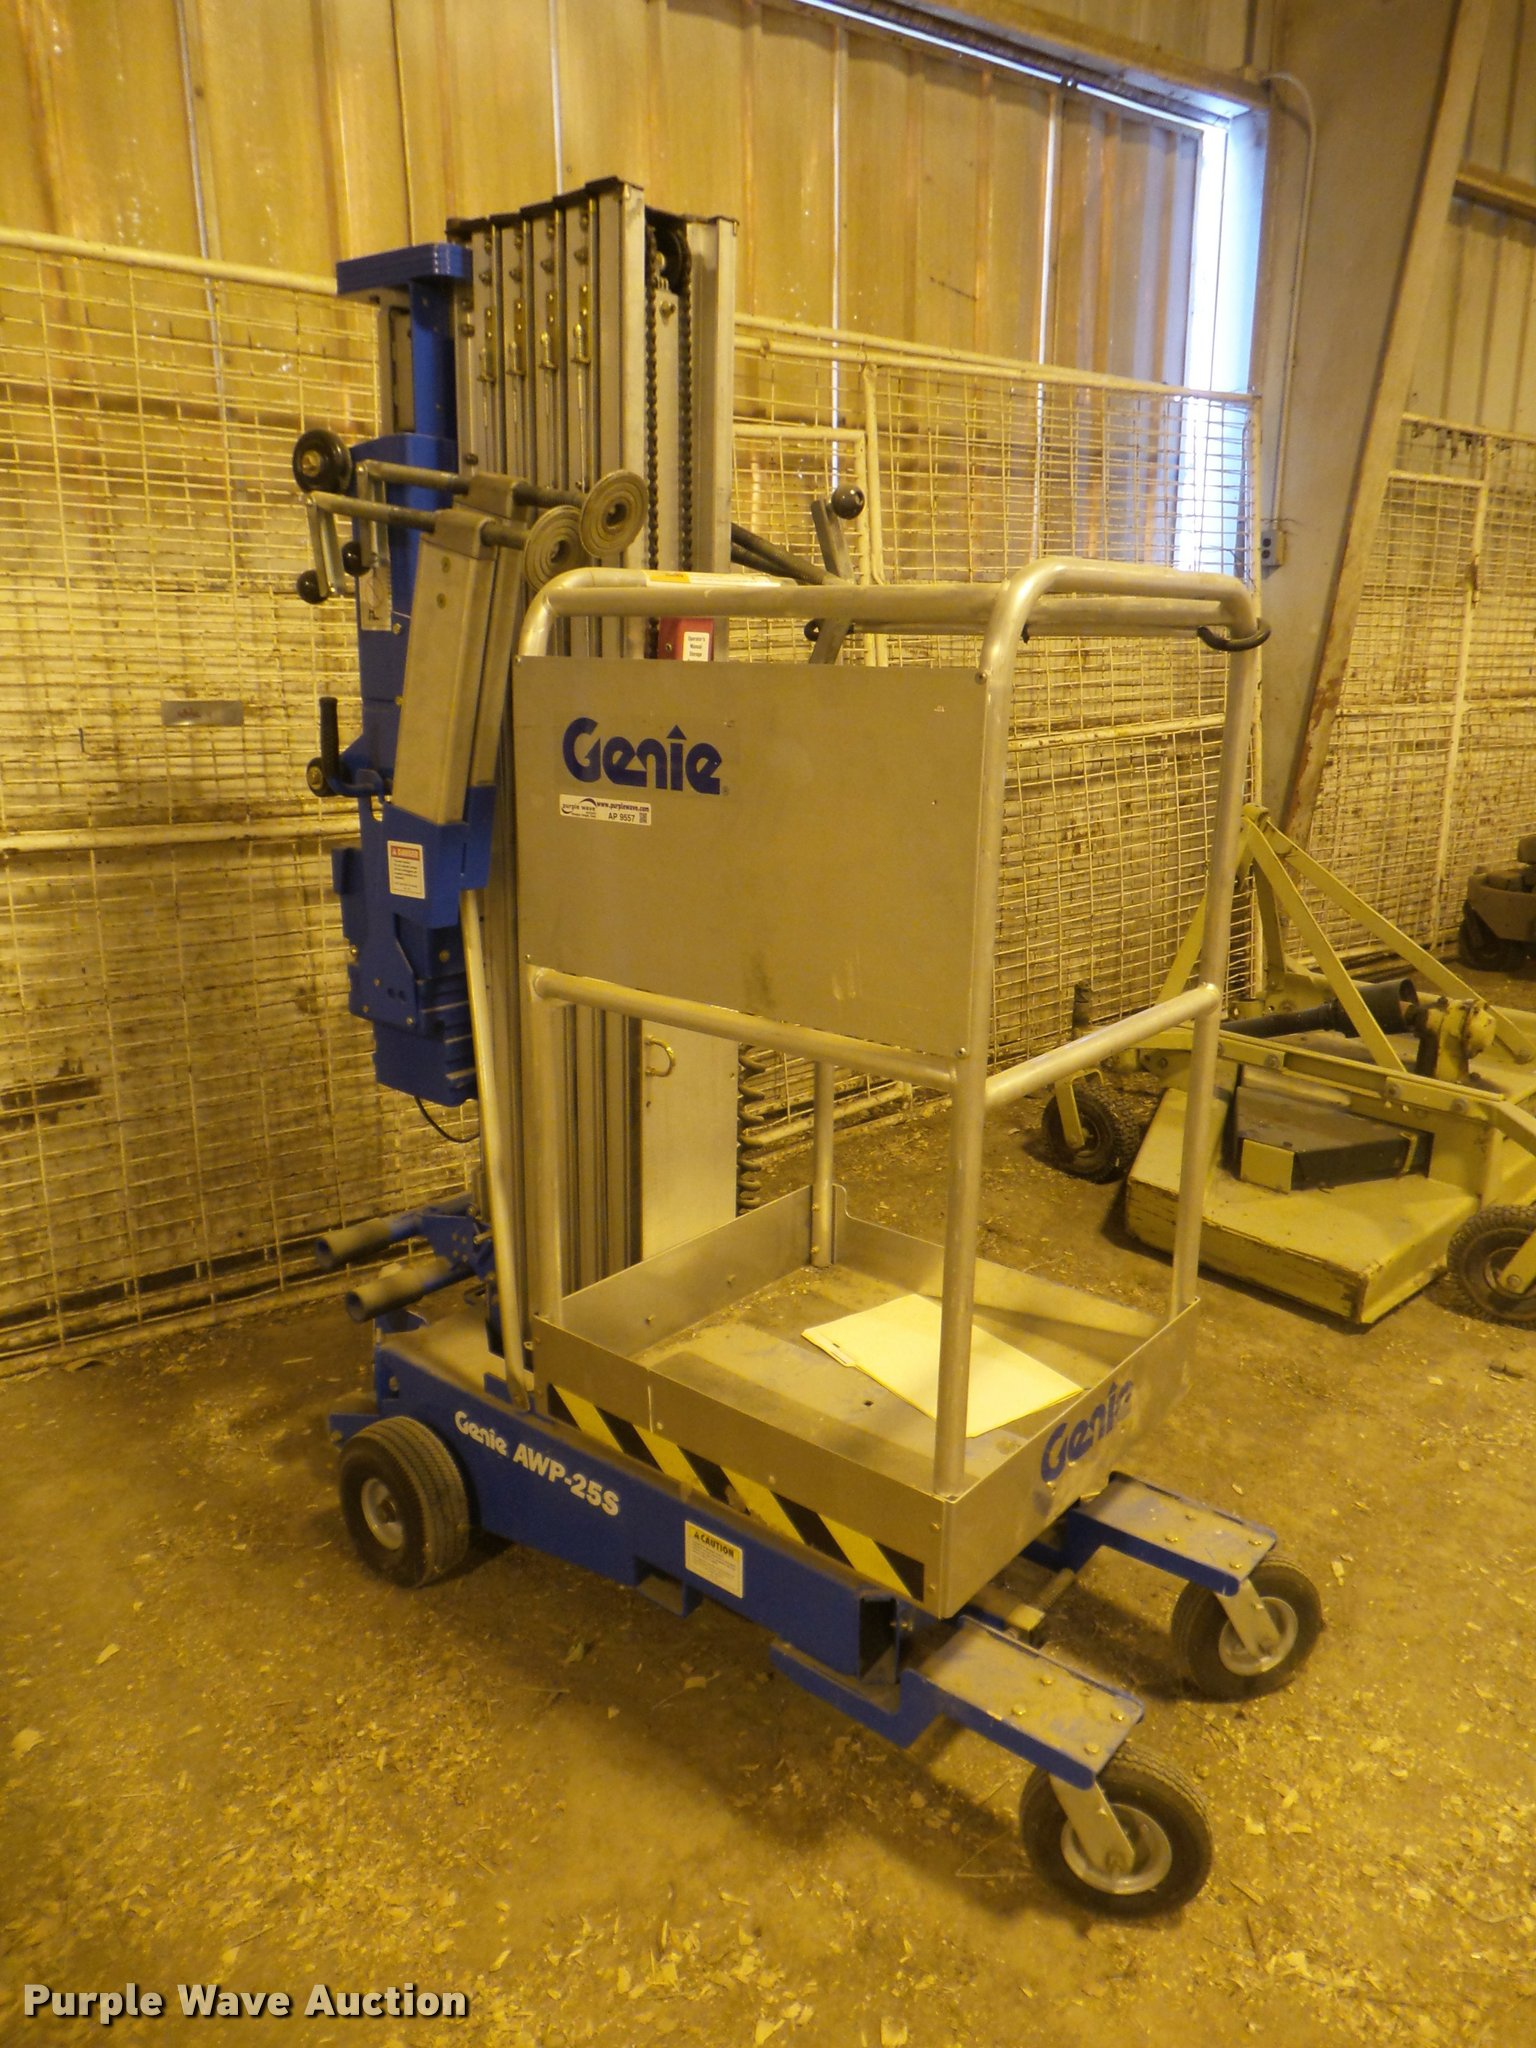 hight resolution of 1999 genie awp 25s man lift for sale in kansas